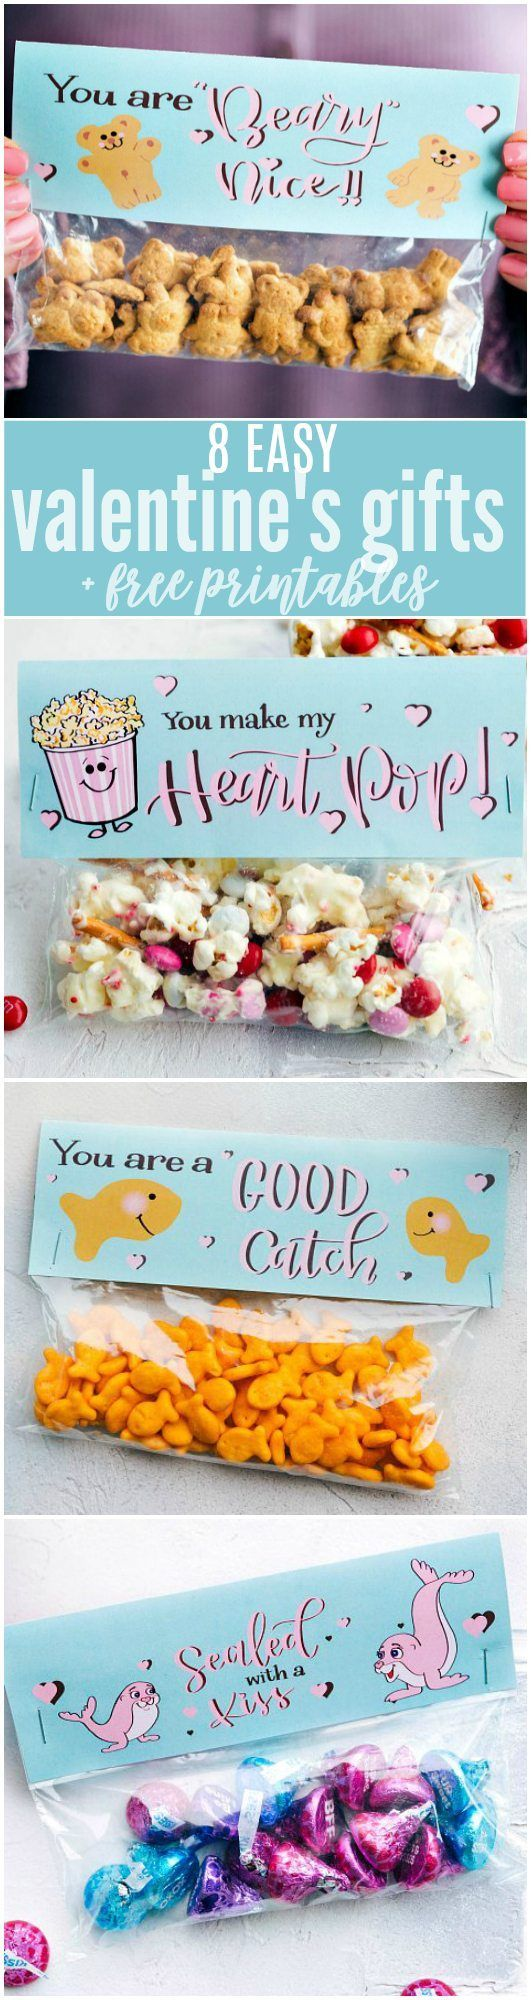 4 MORE homemade and easy Valentine's Day gifts! These candies/treats are put in a snack-size ziplock bag and you can staple on the FREE printable bag toppers! video tutorial Above this text is a q